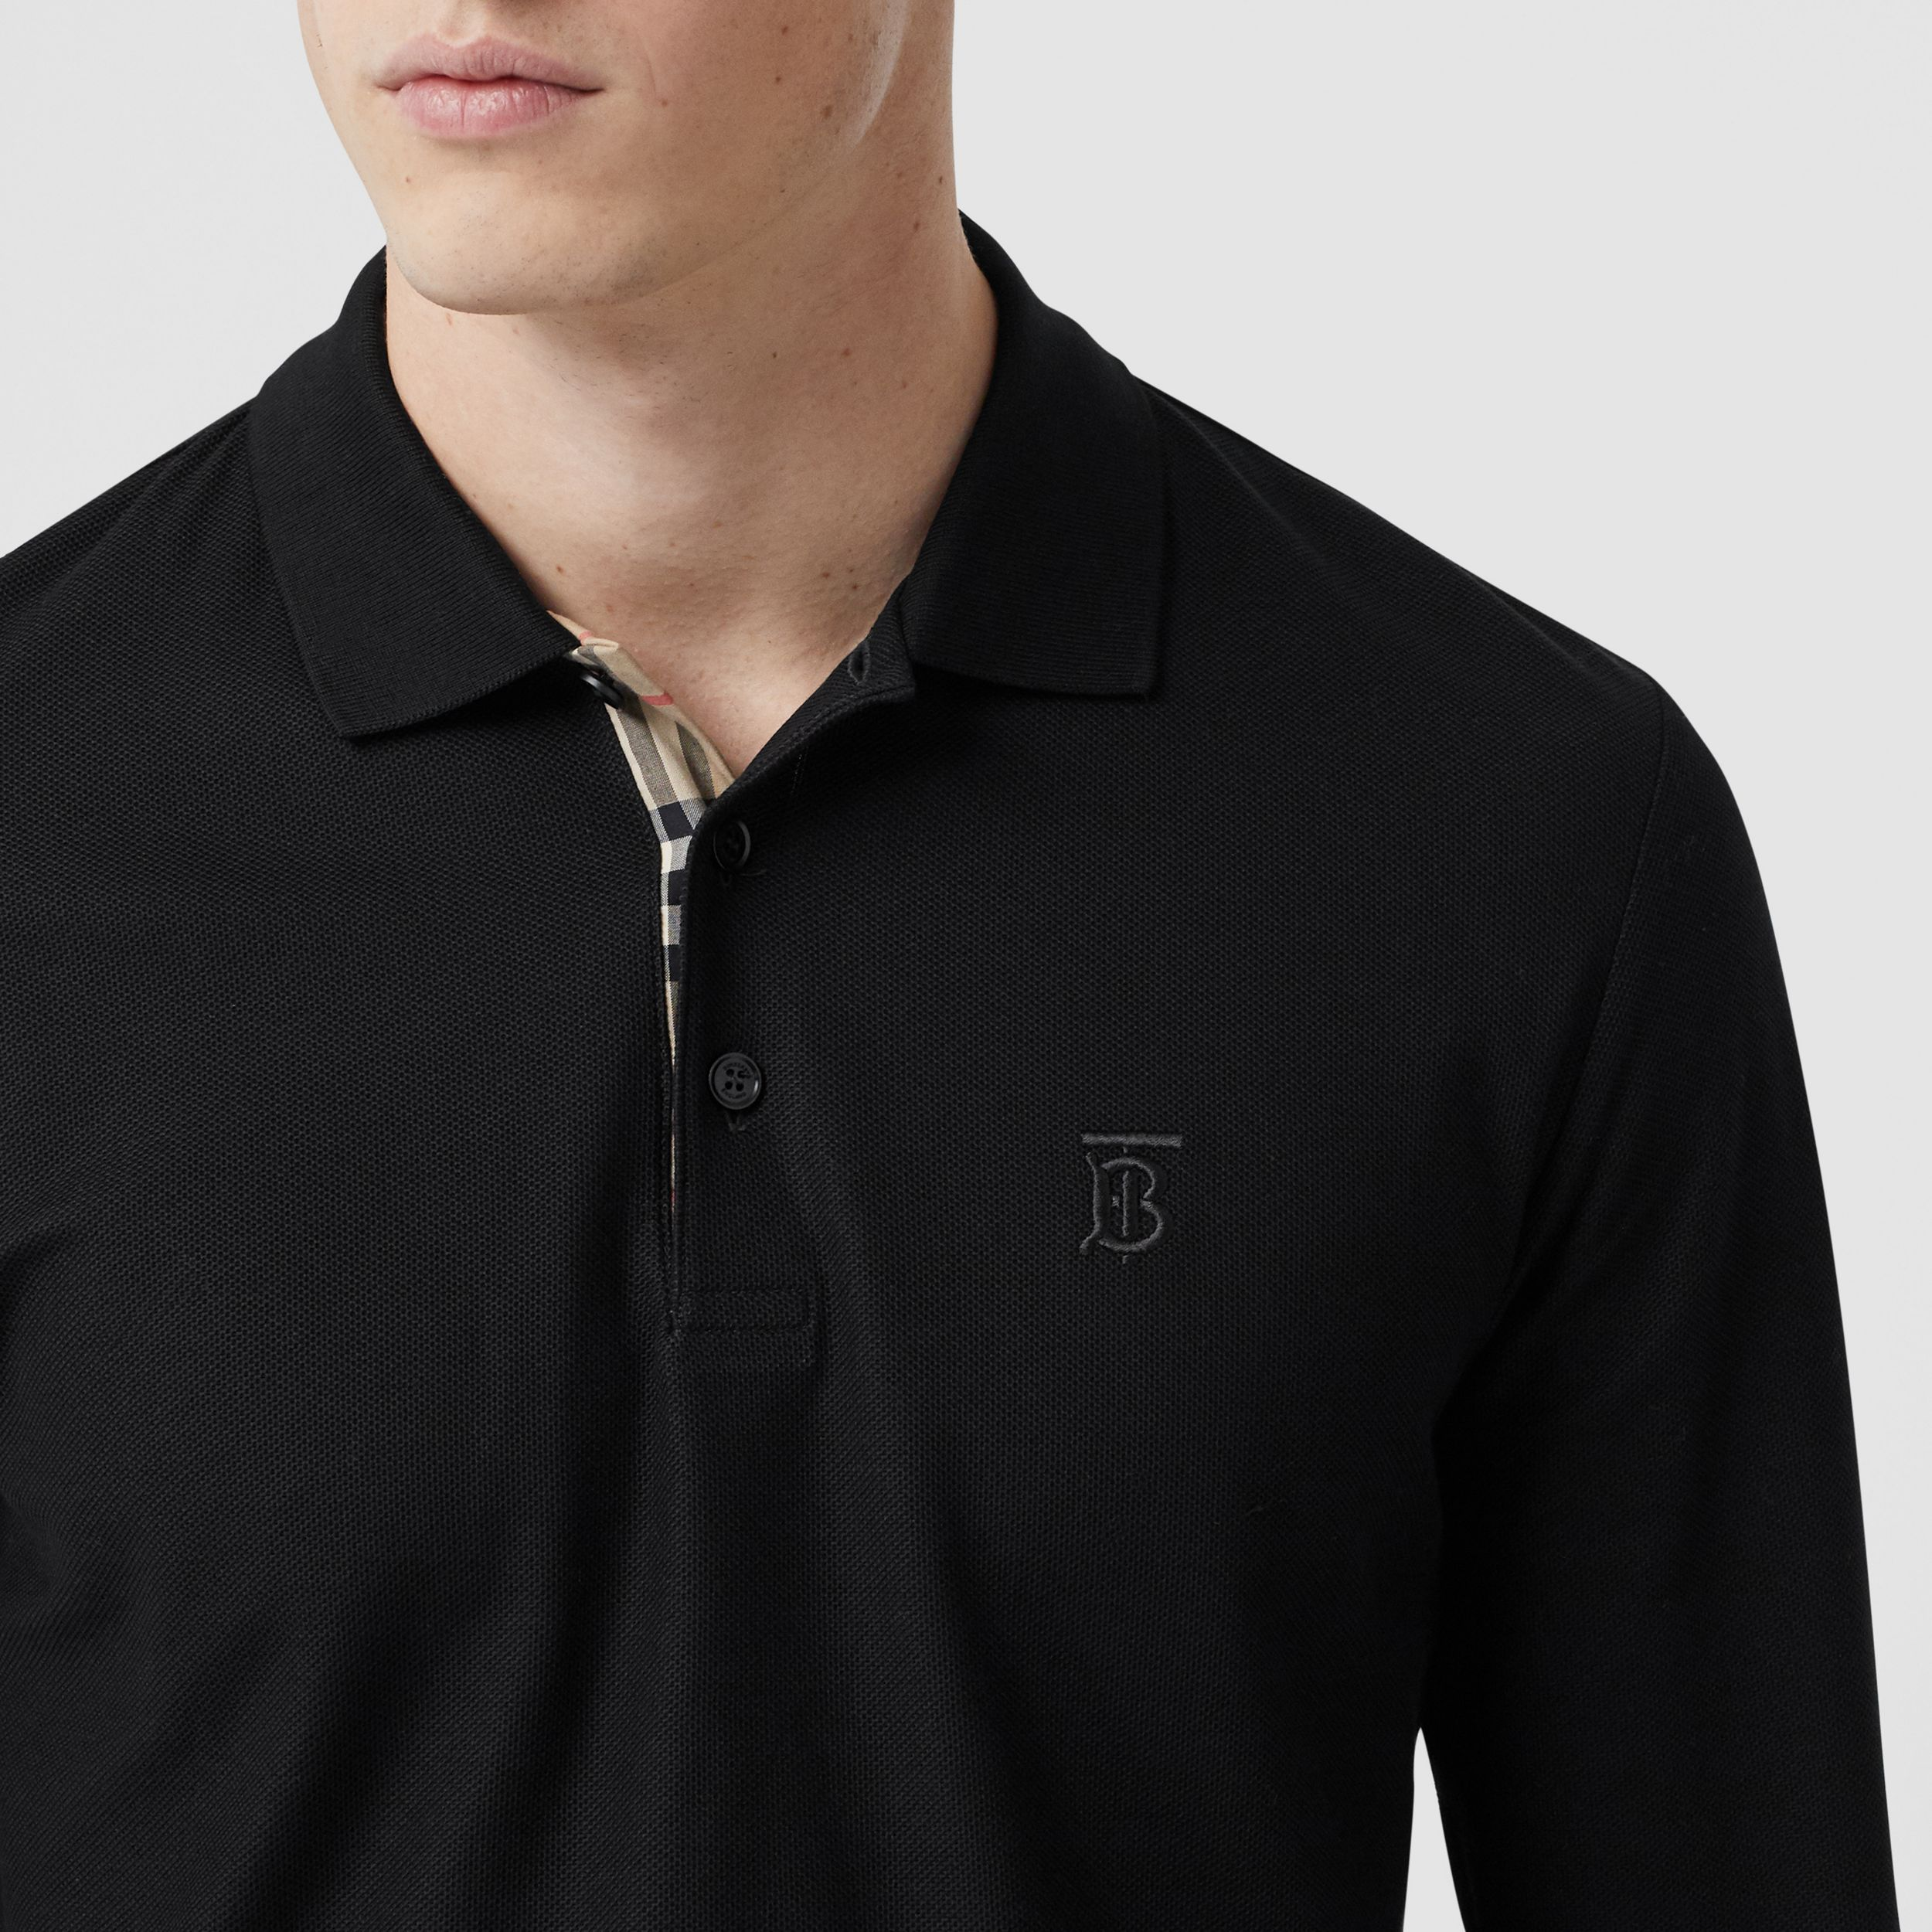 Long-sleeve Monogram Motif Cotton Piqué Polo Shirt in Black - Men | Burberry - 2